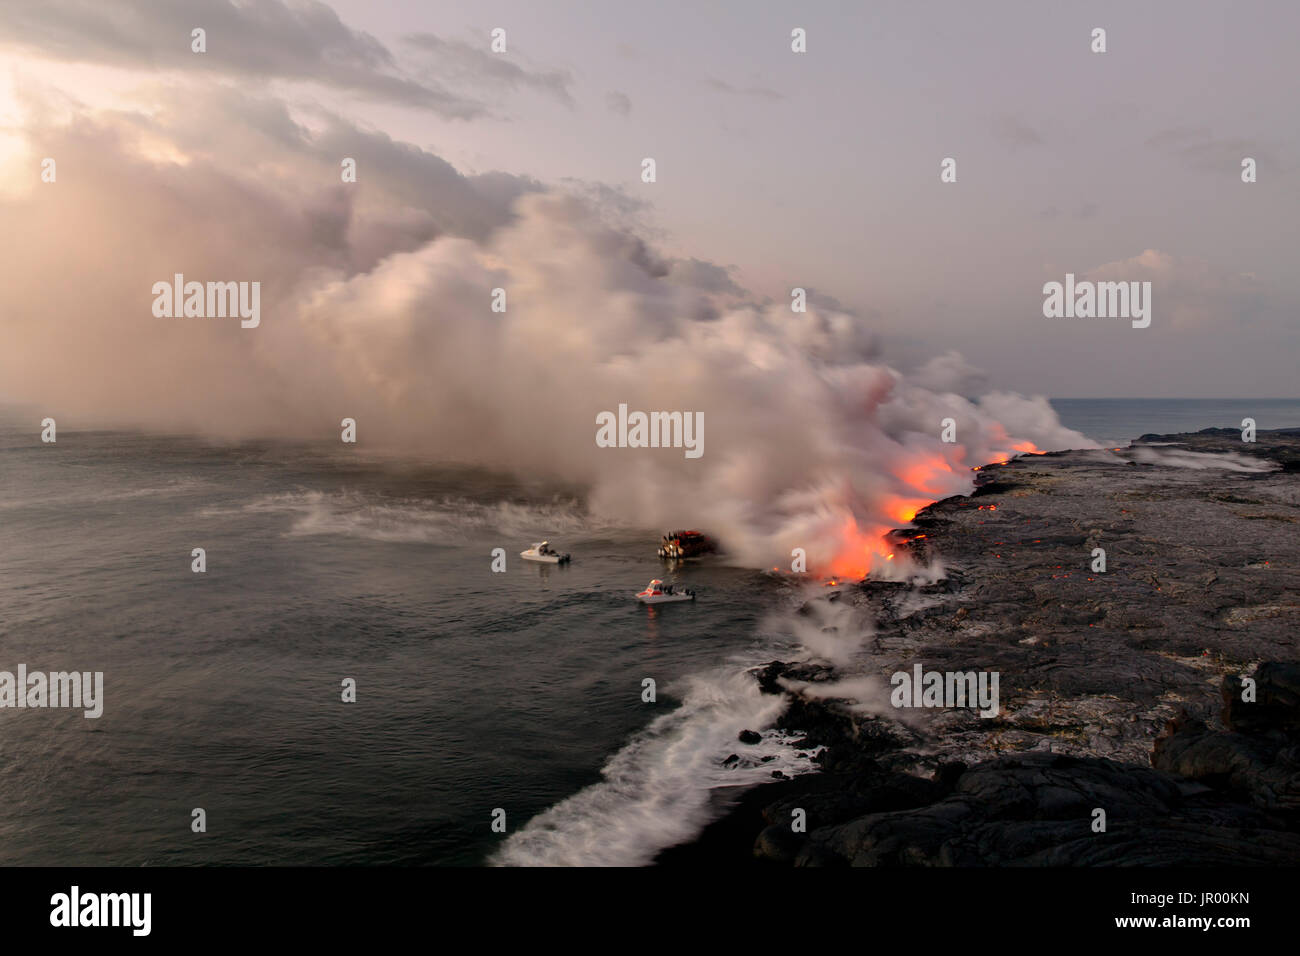 HI00342-00...HAWAI'I - Boats approaching lava flowing into the Pacific Ocean from the East Riff Zoneof the Kilauea Volcano on the Island of Hawai'i. - Stock Image